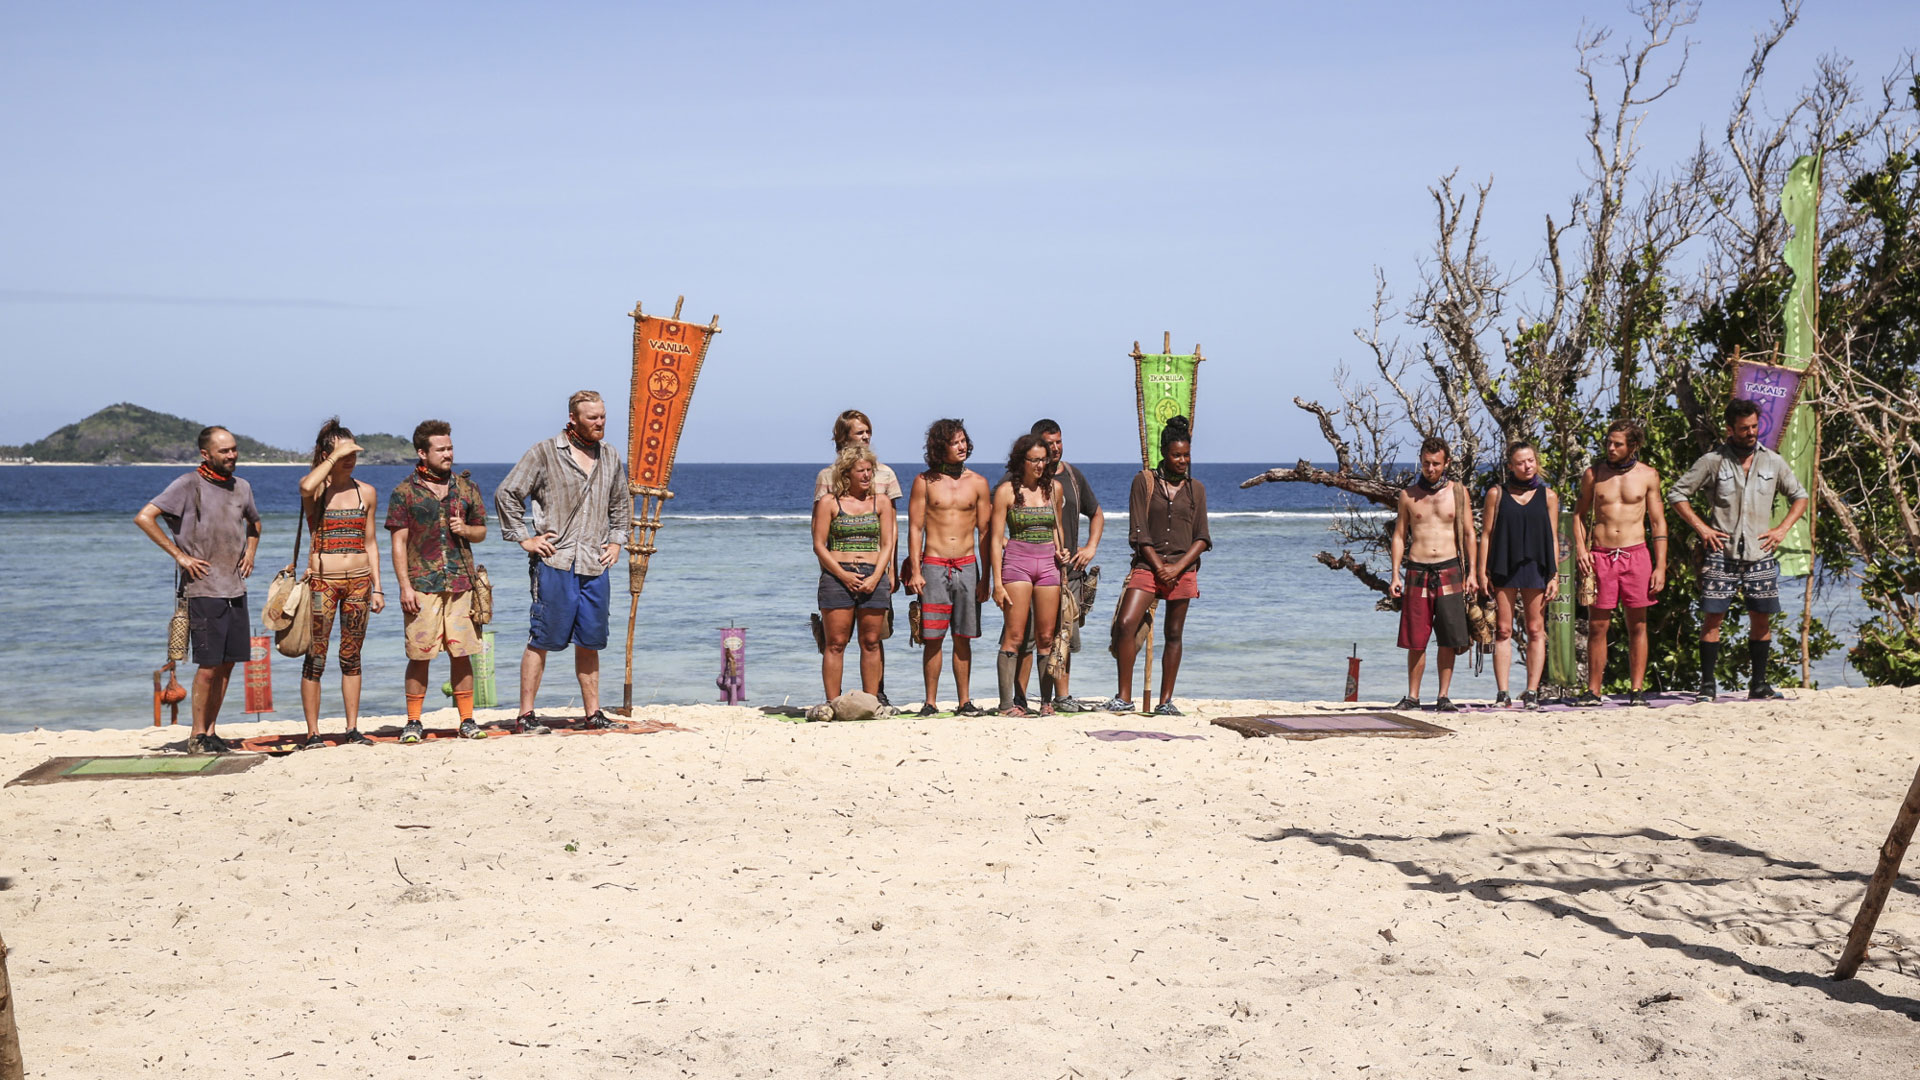 The Vanua, Ikabula, and Takali Tribes get ready to compete in the next Reward Challenge.